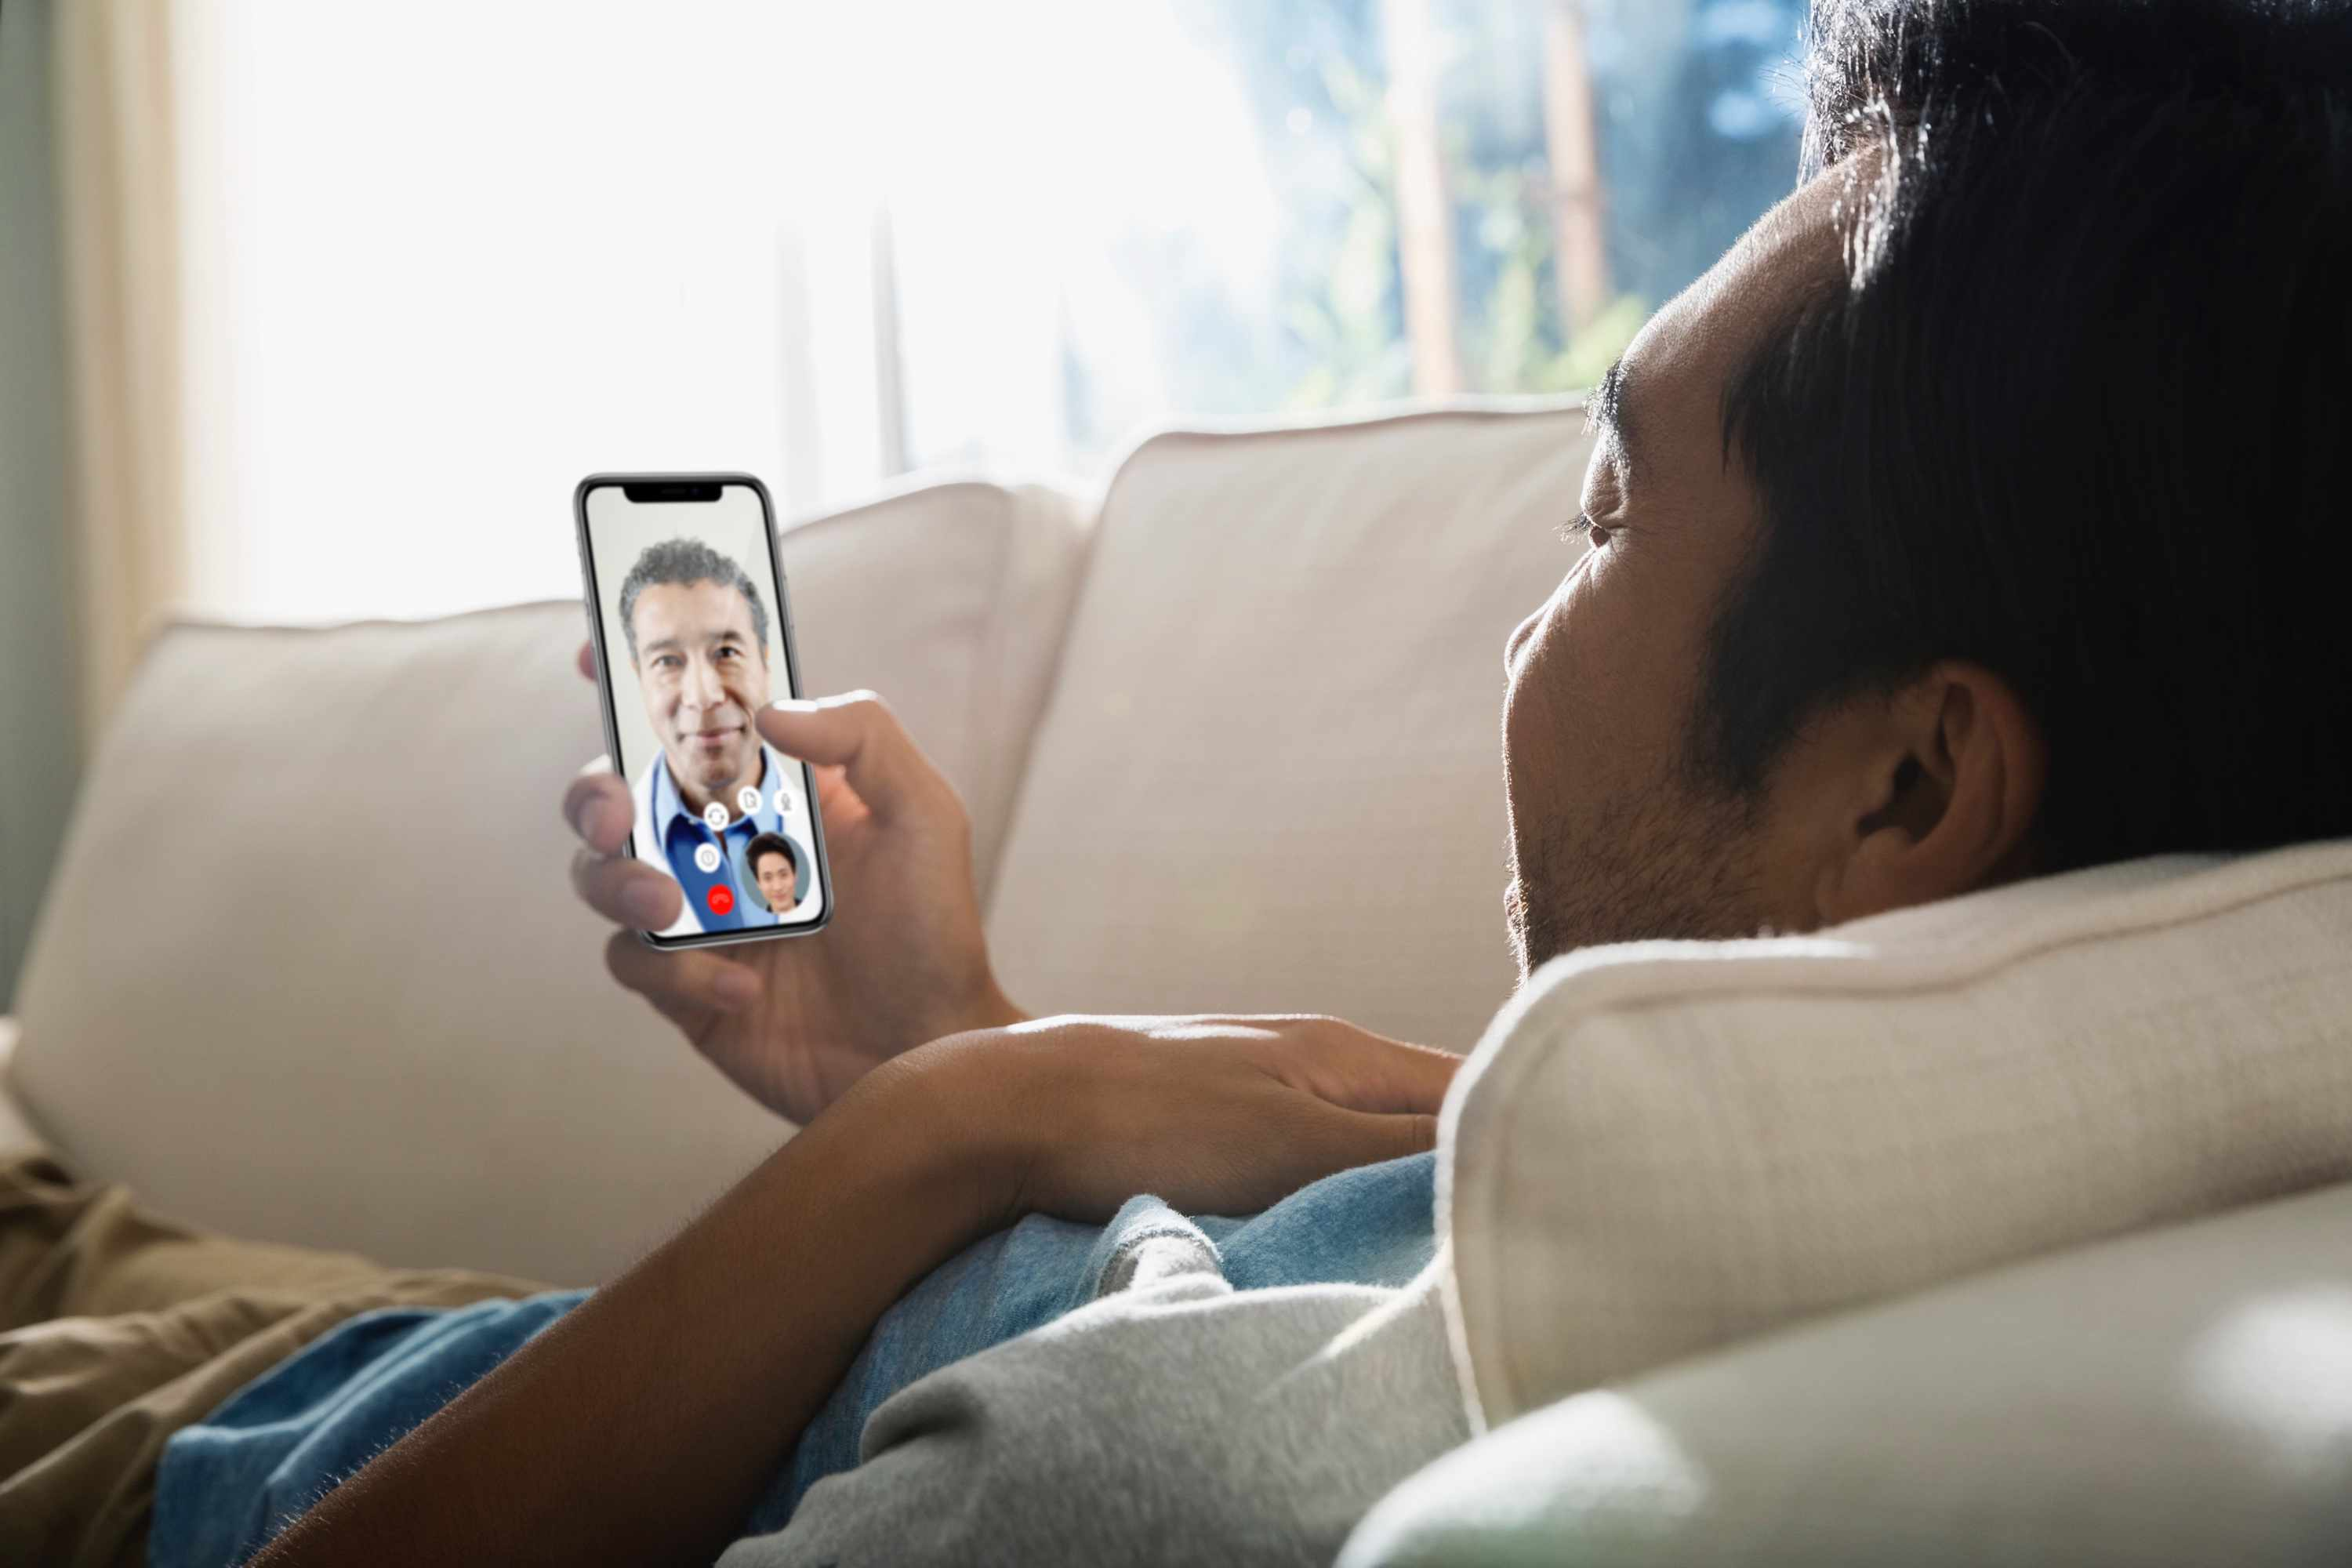 Person chatting with health provider on their phone via video chat